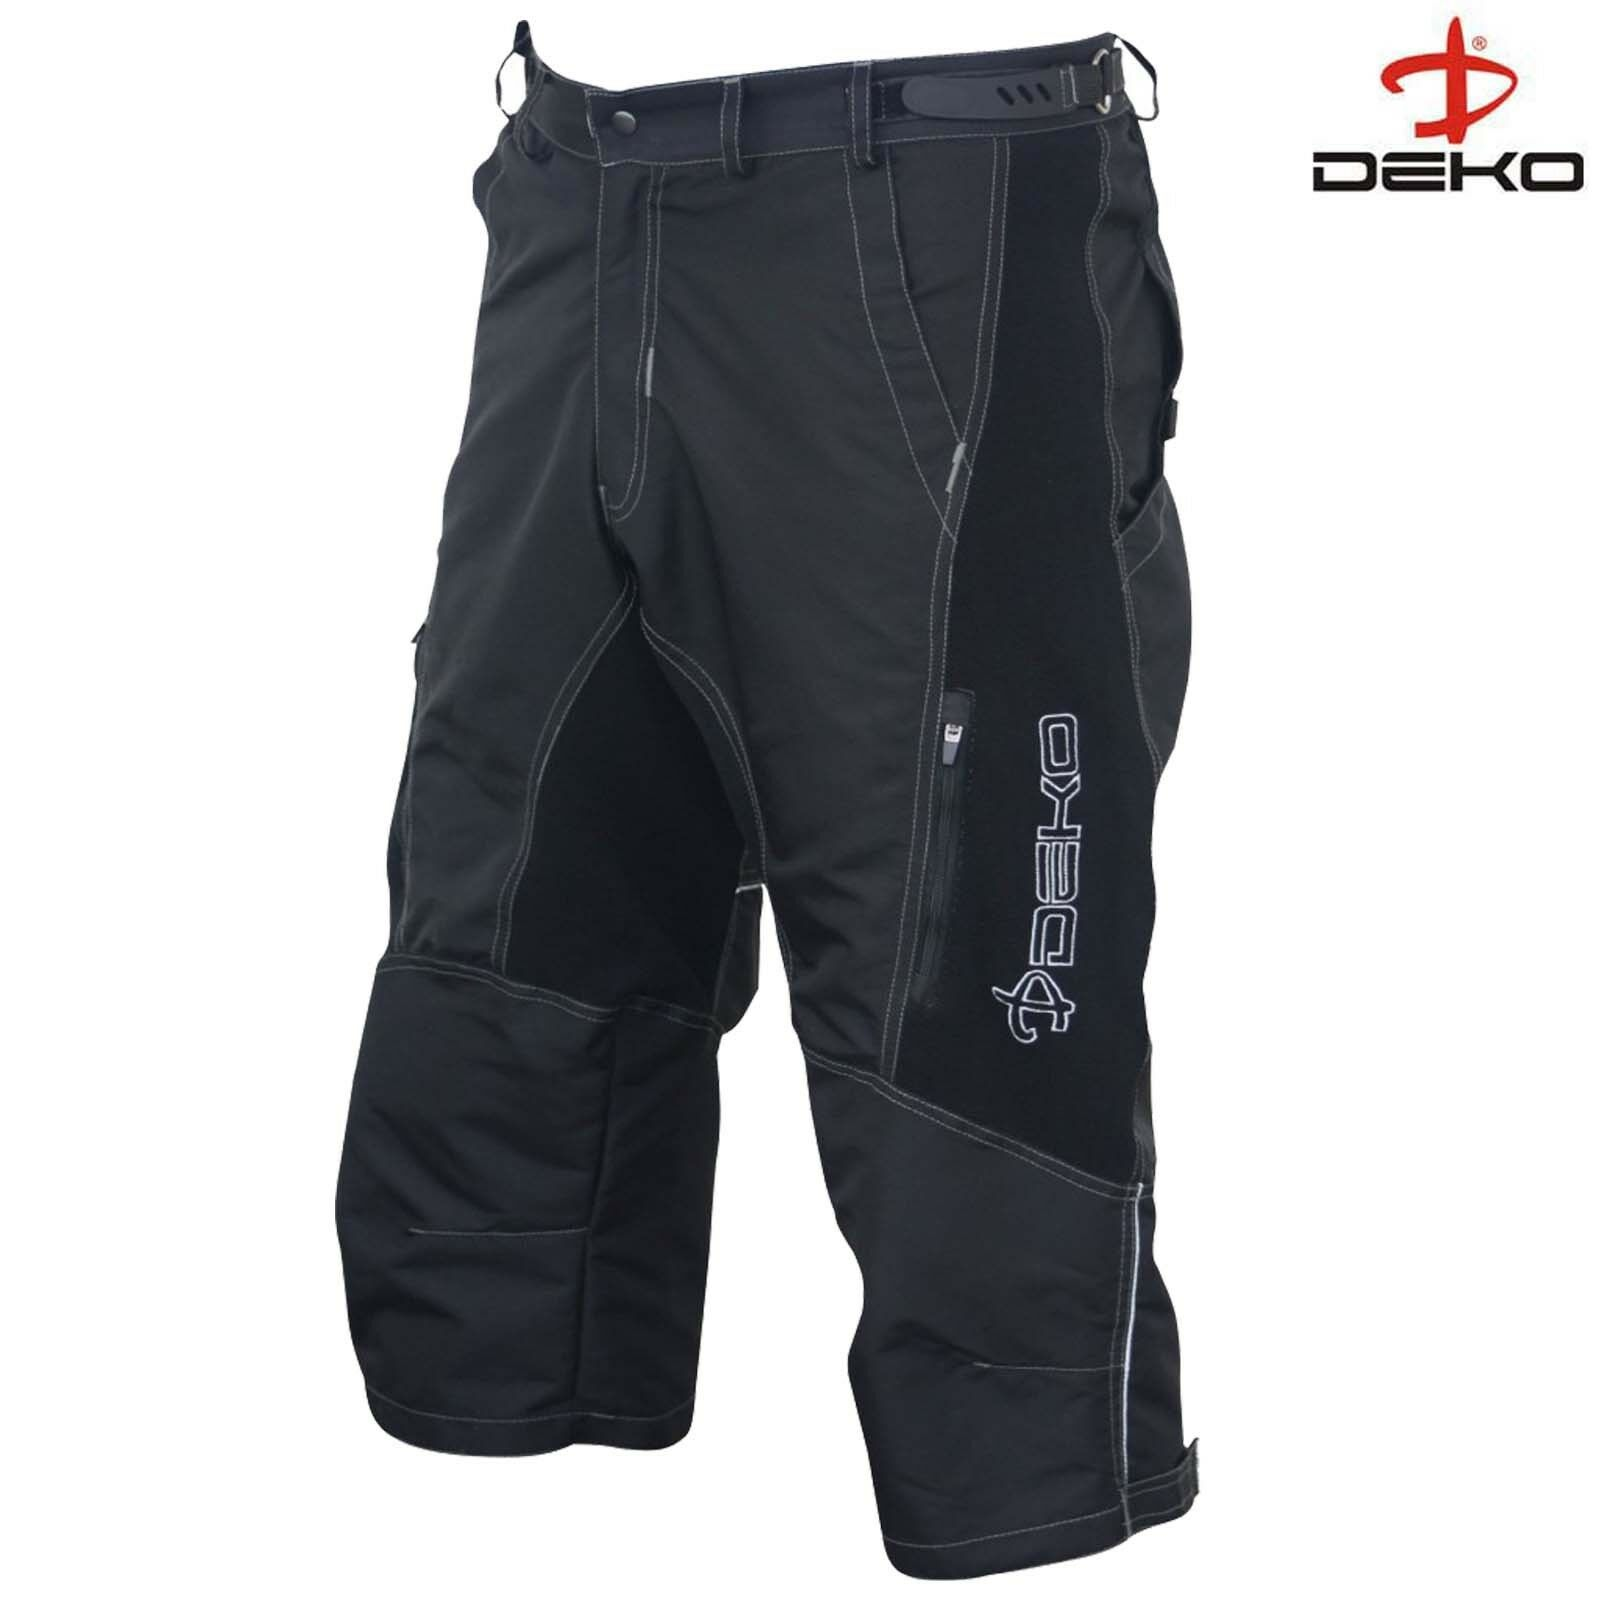 DEKO Cycling Baggy Shorts MTB Mountain Bike Shorts Pants Sport Bicycle Short 901